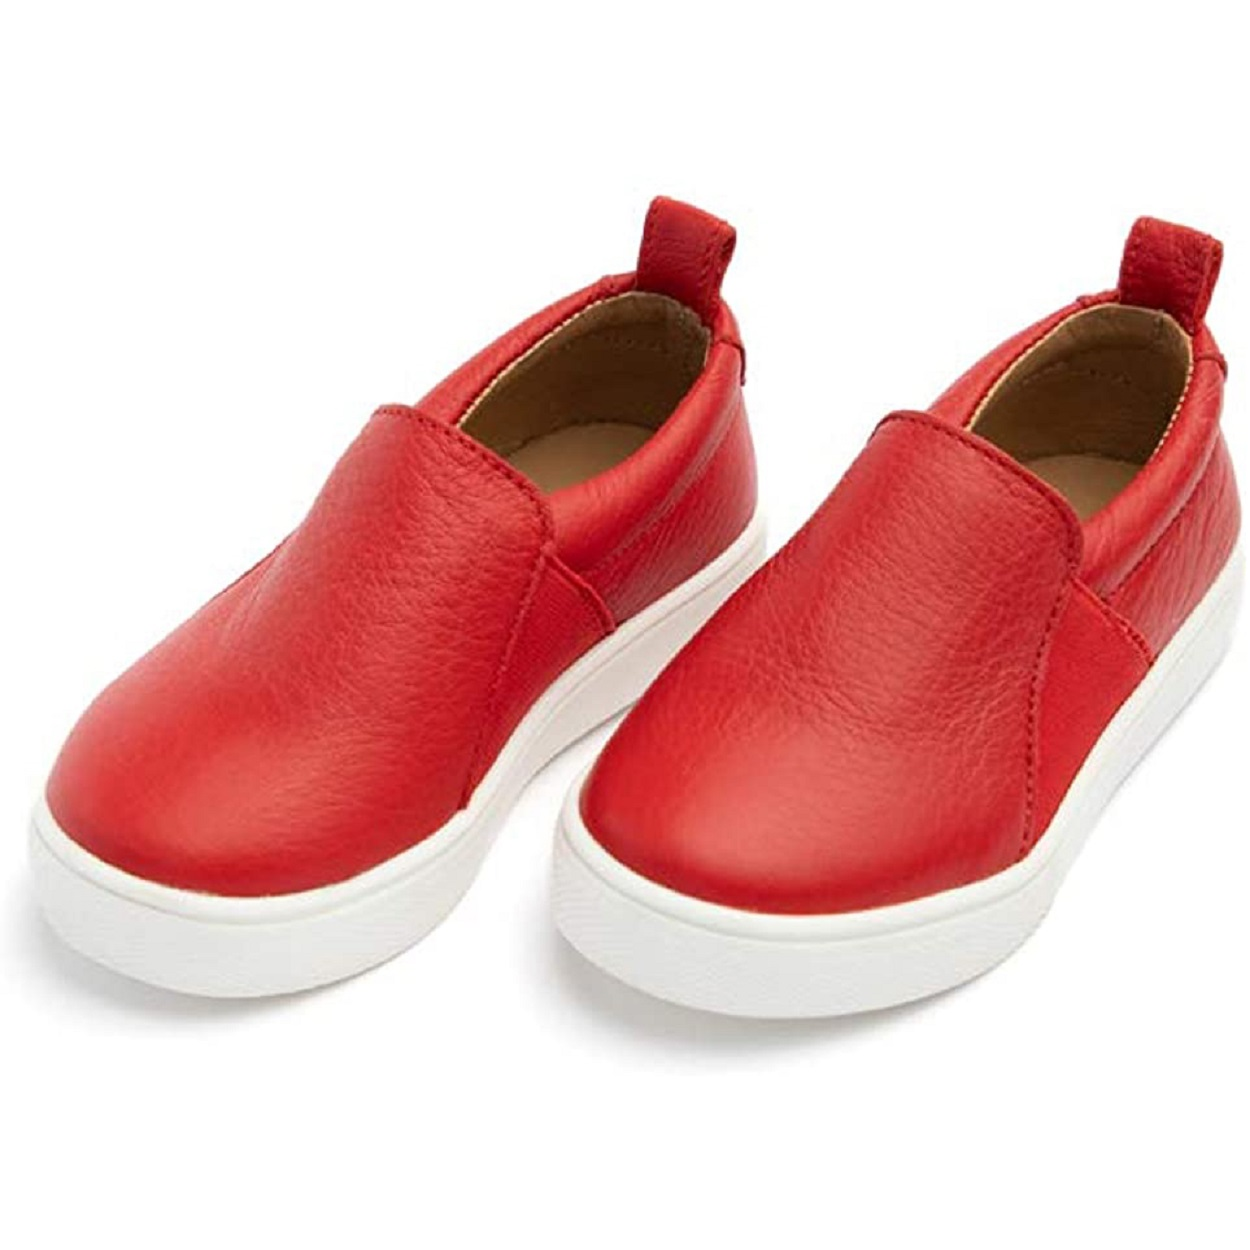 childrens shoes red loafers